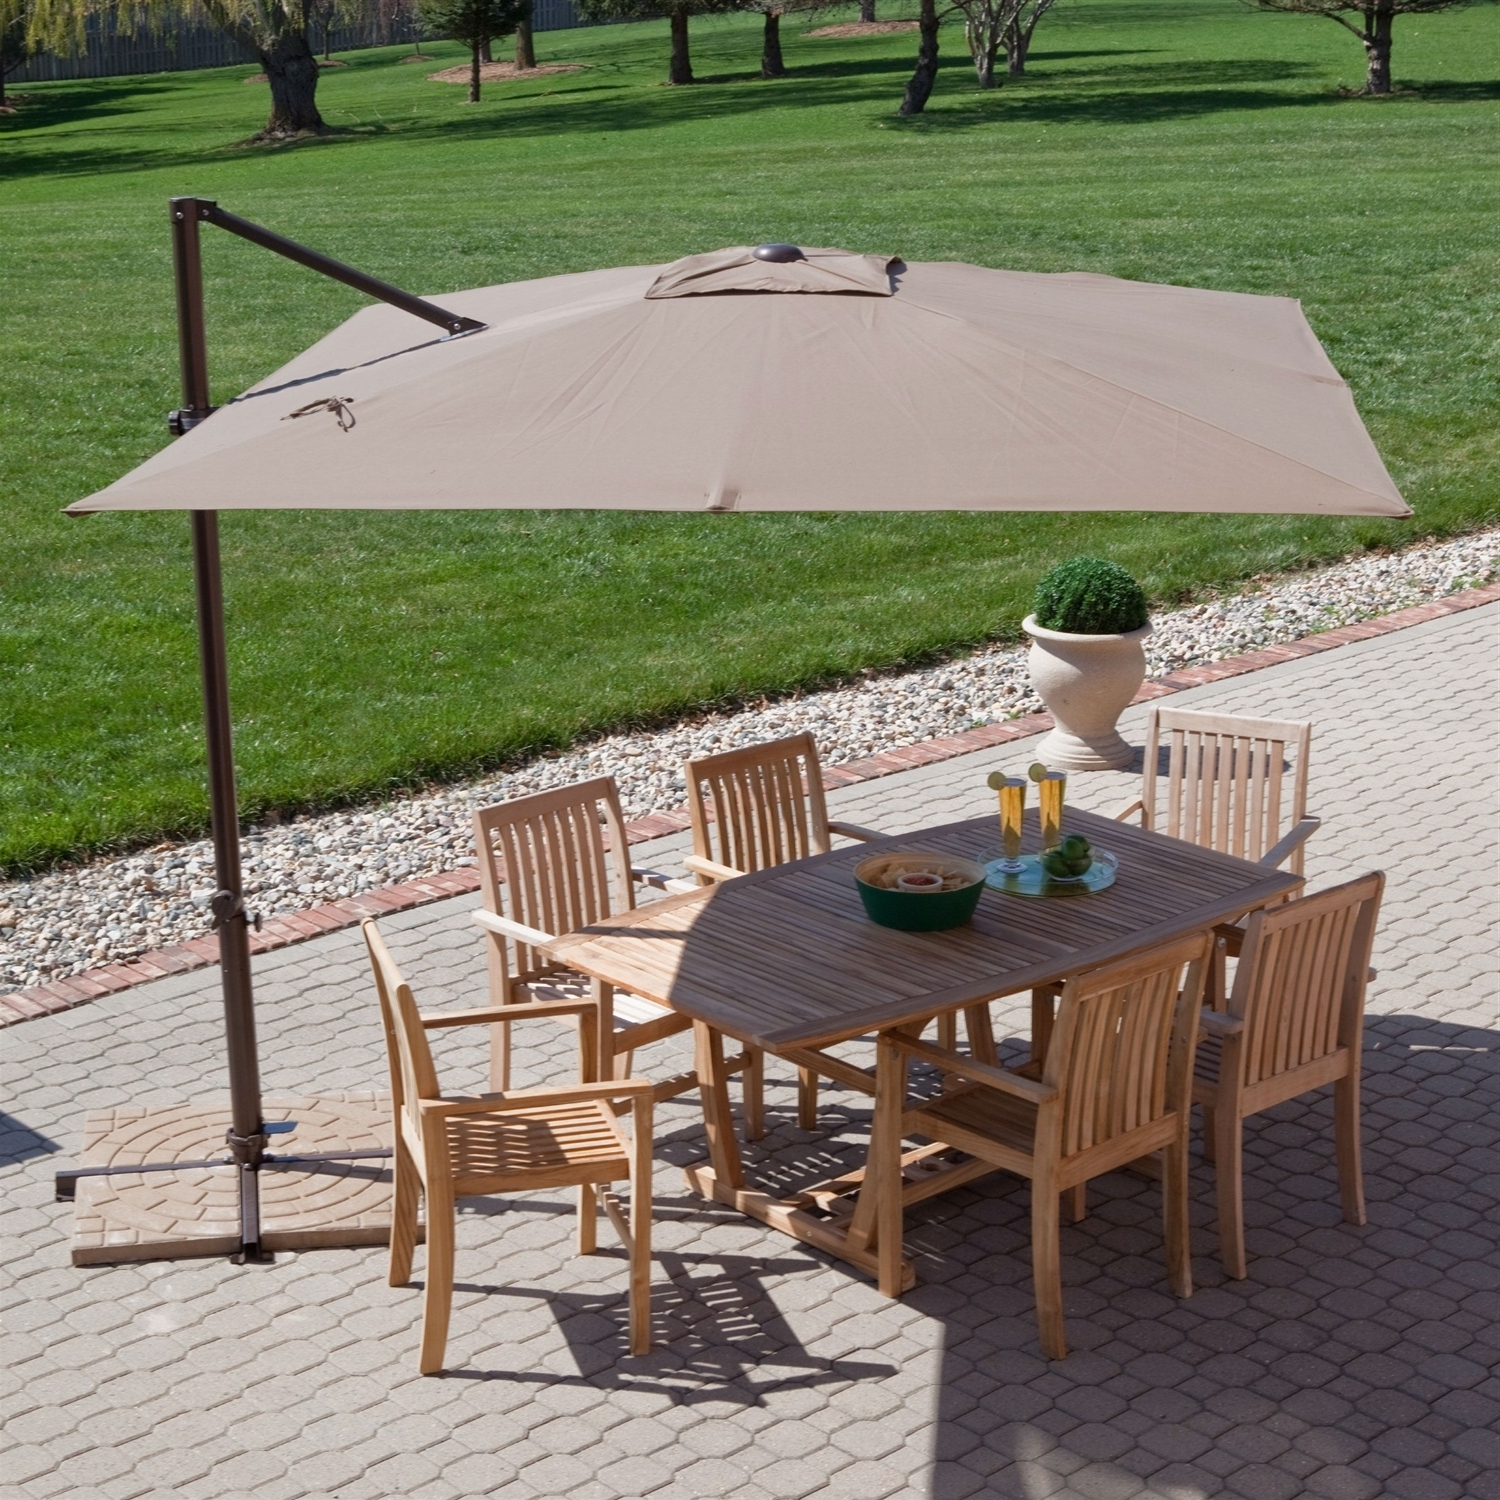 A Guide To Buying Offset Patio Umbrella – Blogbeen Pertaining To Most Up To Date Offset Patio Umbrellas (View 1 of 20)